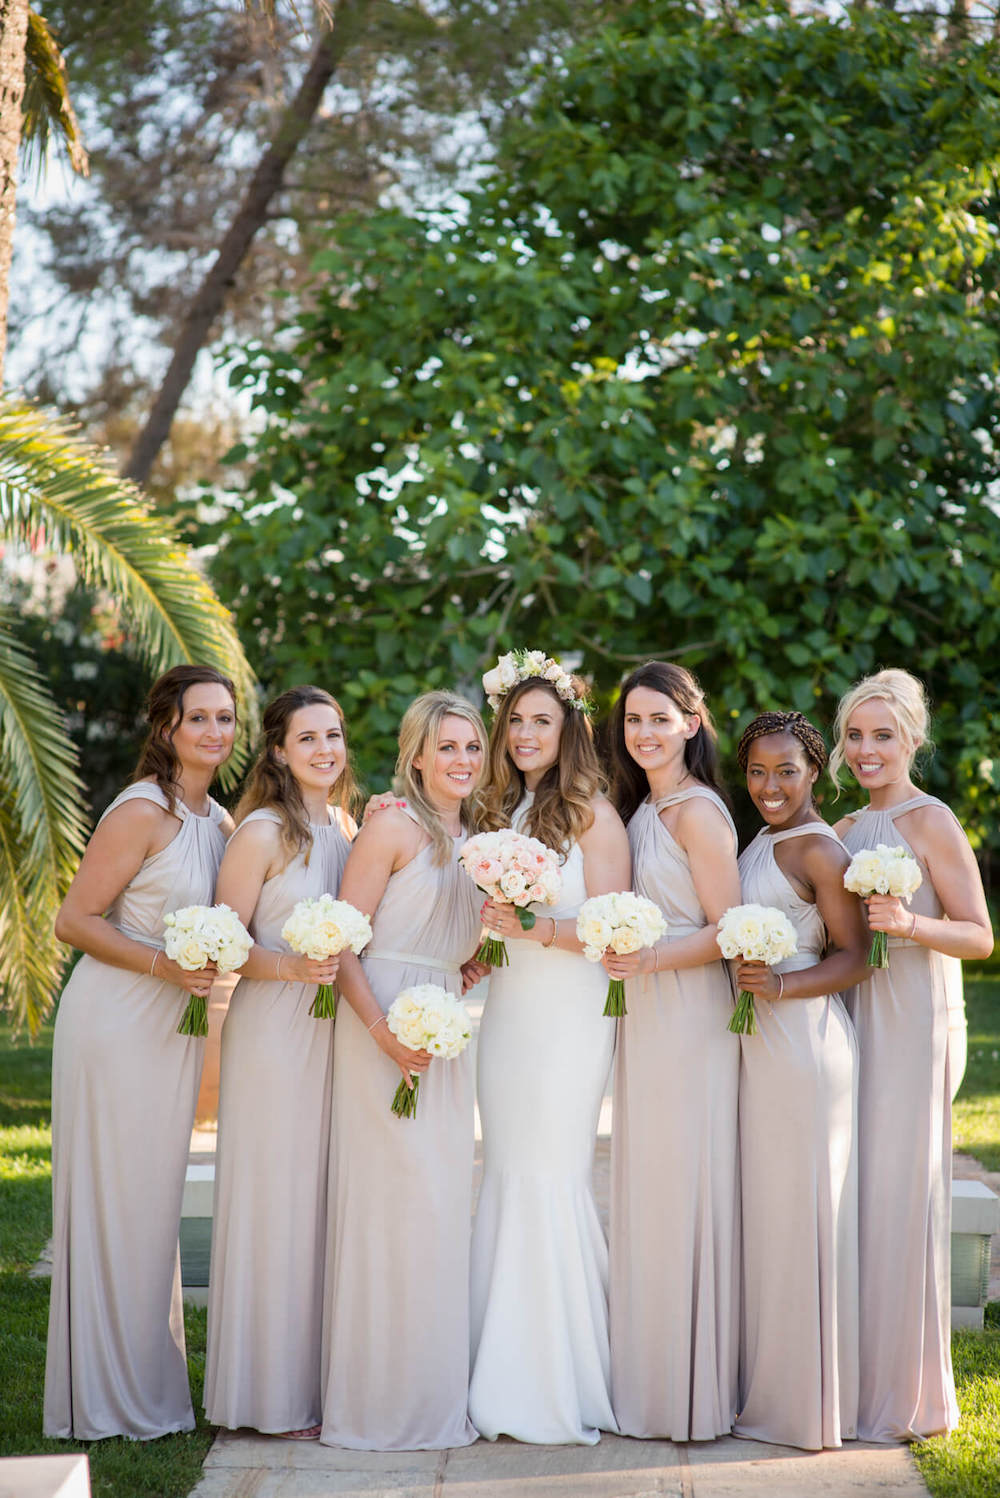 bride bridemaids formal photo jenny packham bridal